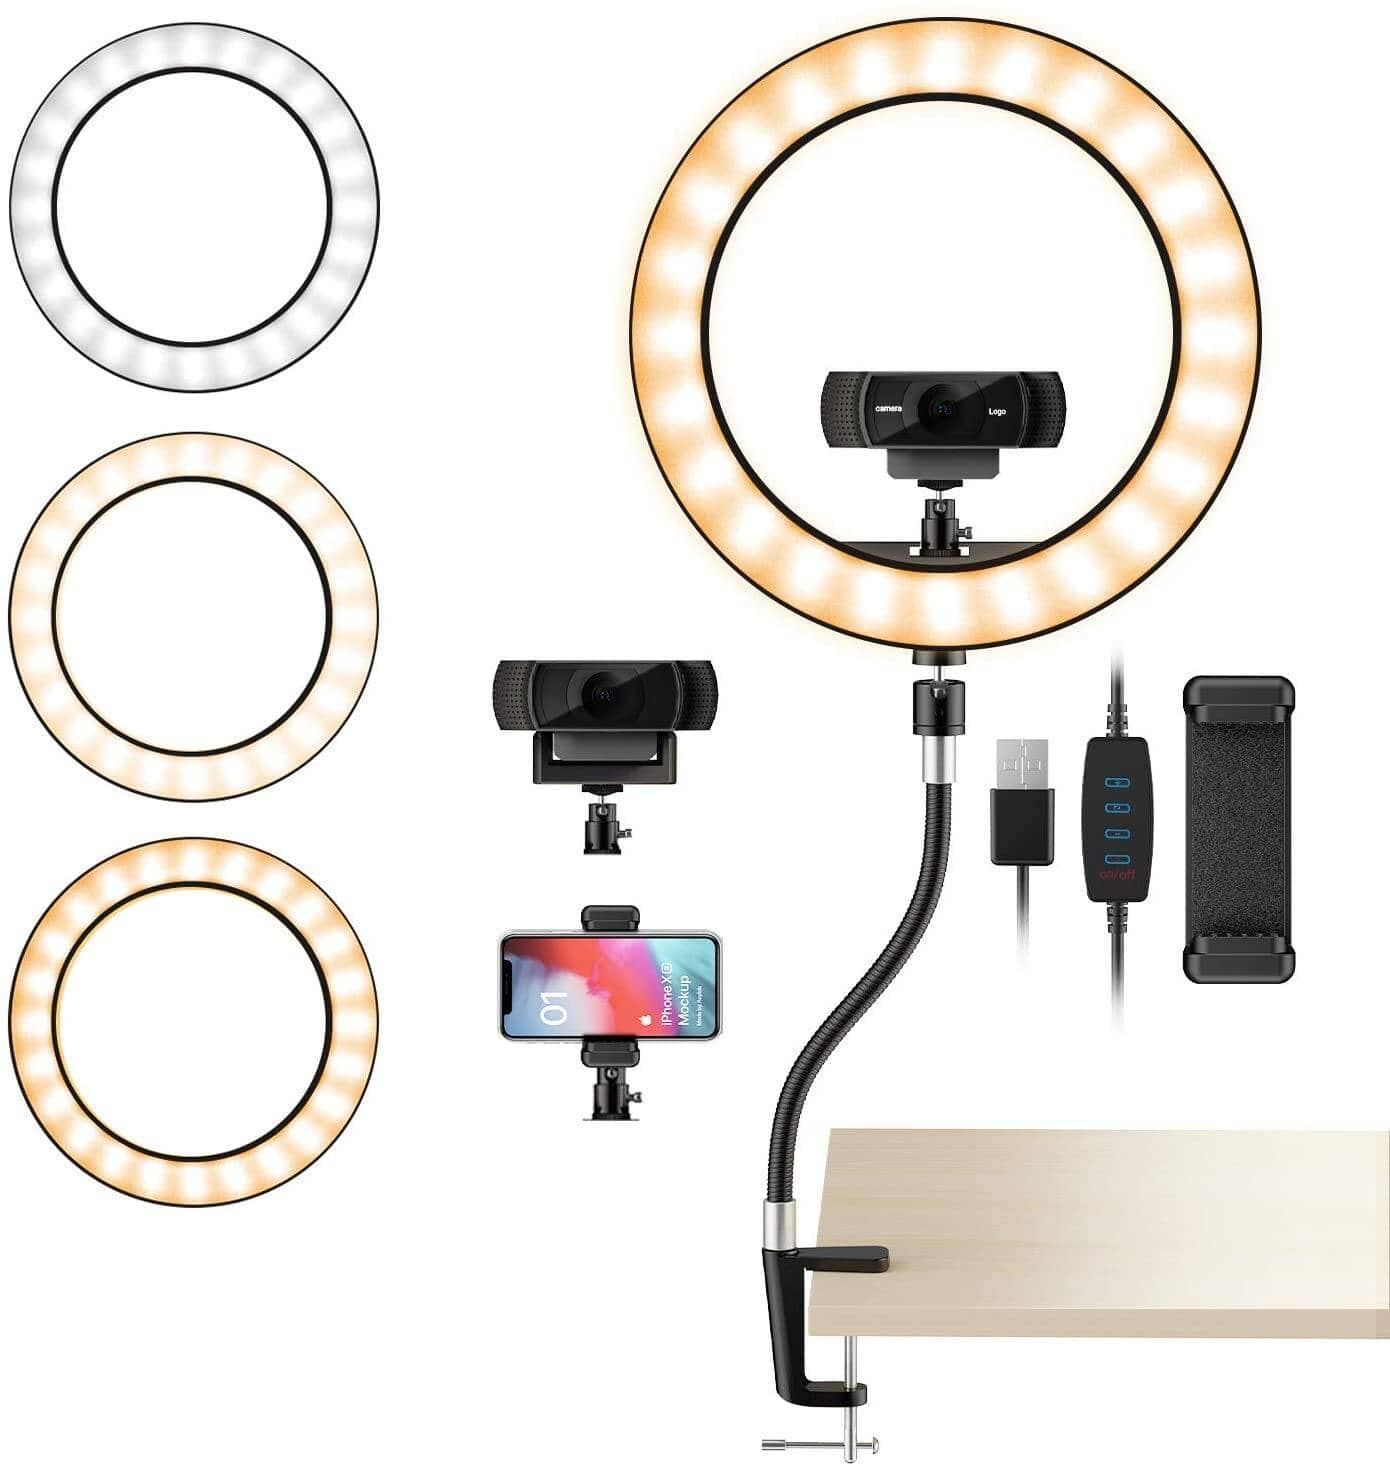 """Amada 10"""" Webcam Light Stand with 3-Light Mode for Live Stream, Make-up, Selfie only $10.34 + Free Shipping w/ Amazon Prime or Orders $25+"""